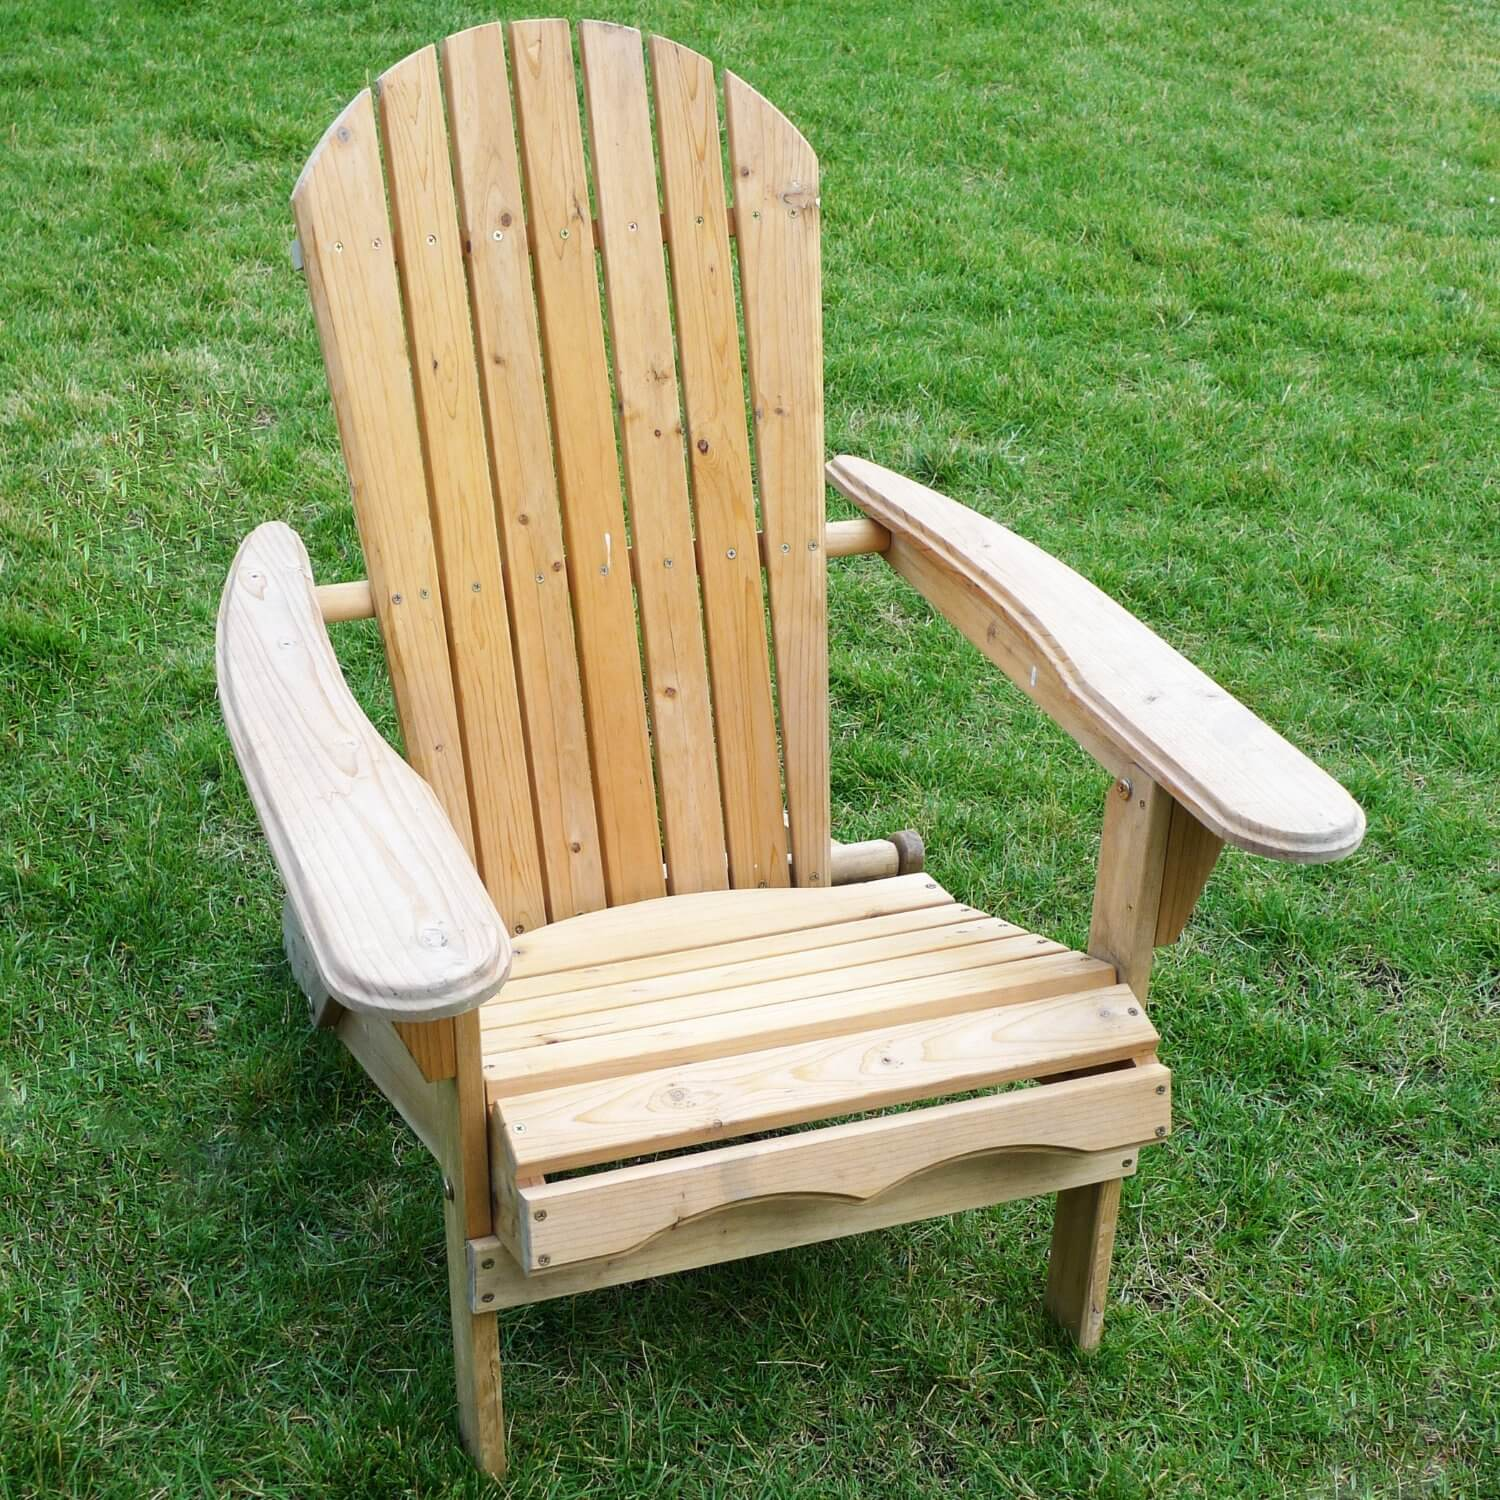 How To Build A Wooden Pallet Adirondack Chair (Step By Step Tutorial). Full resolution‎  portraiture, nominally Width 1500 Height 1500 pixels, portraiture with #9B7030.